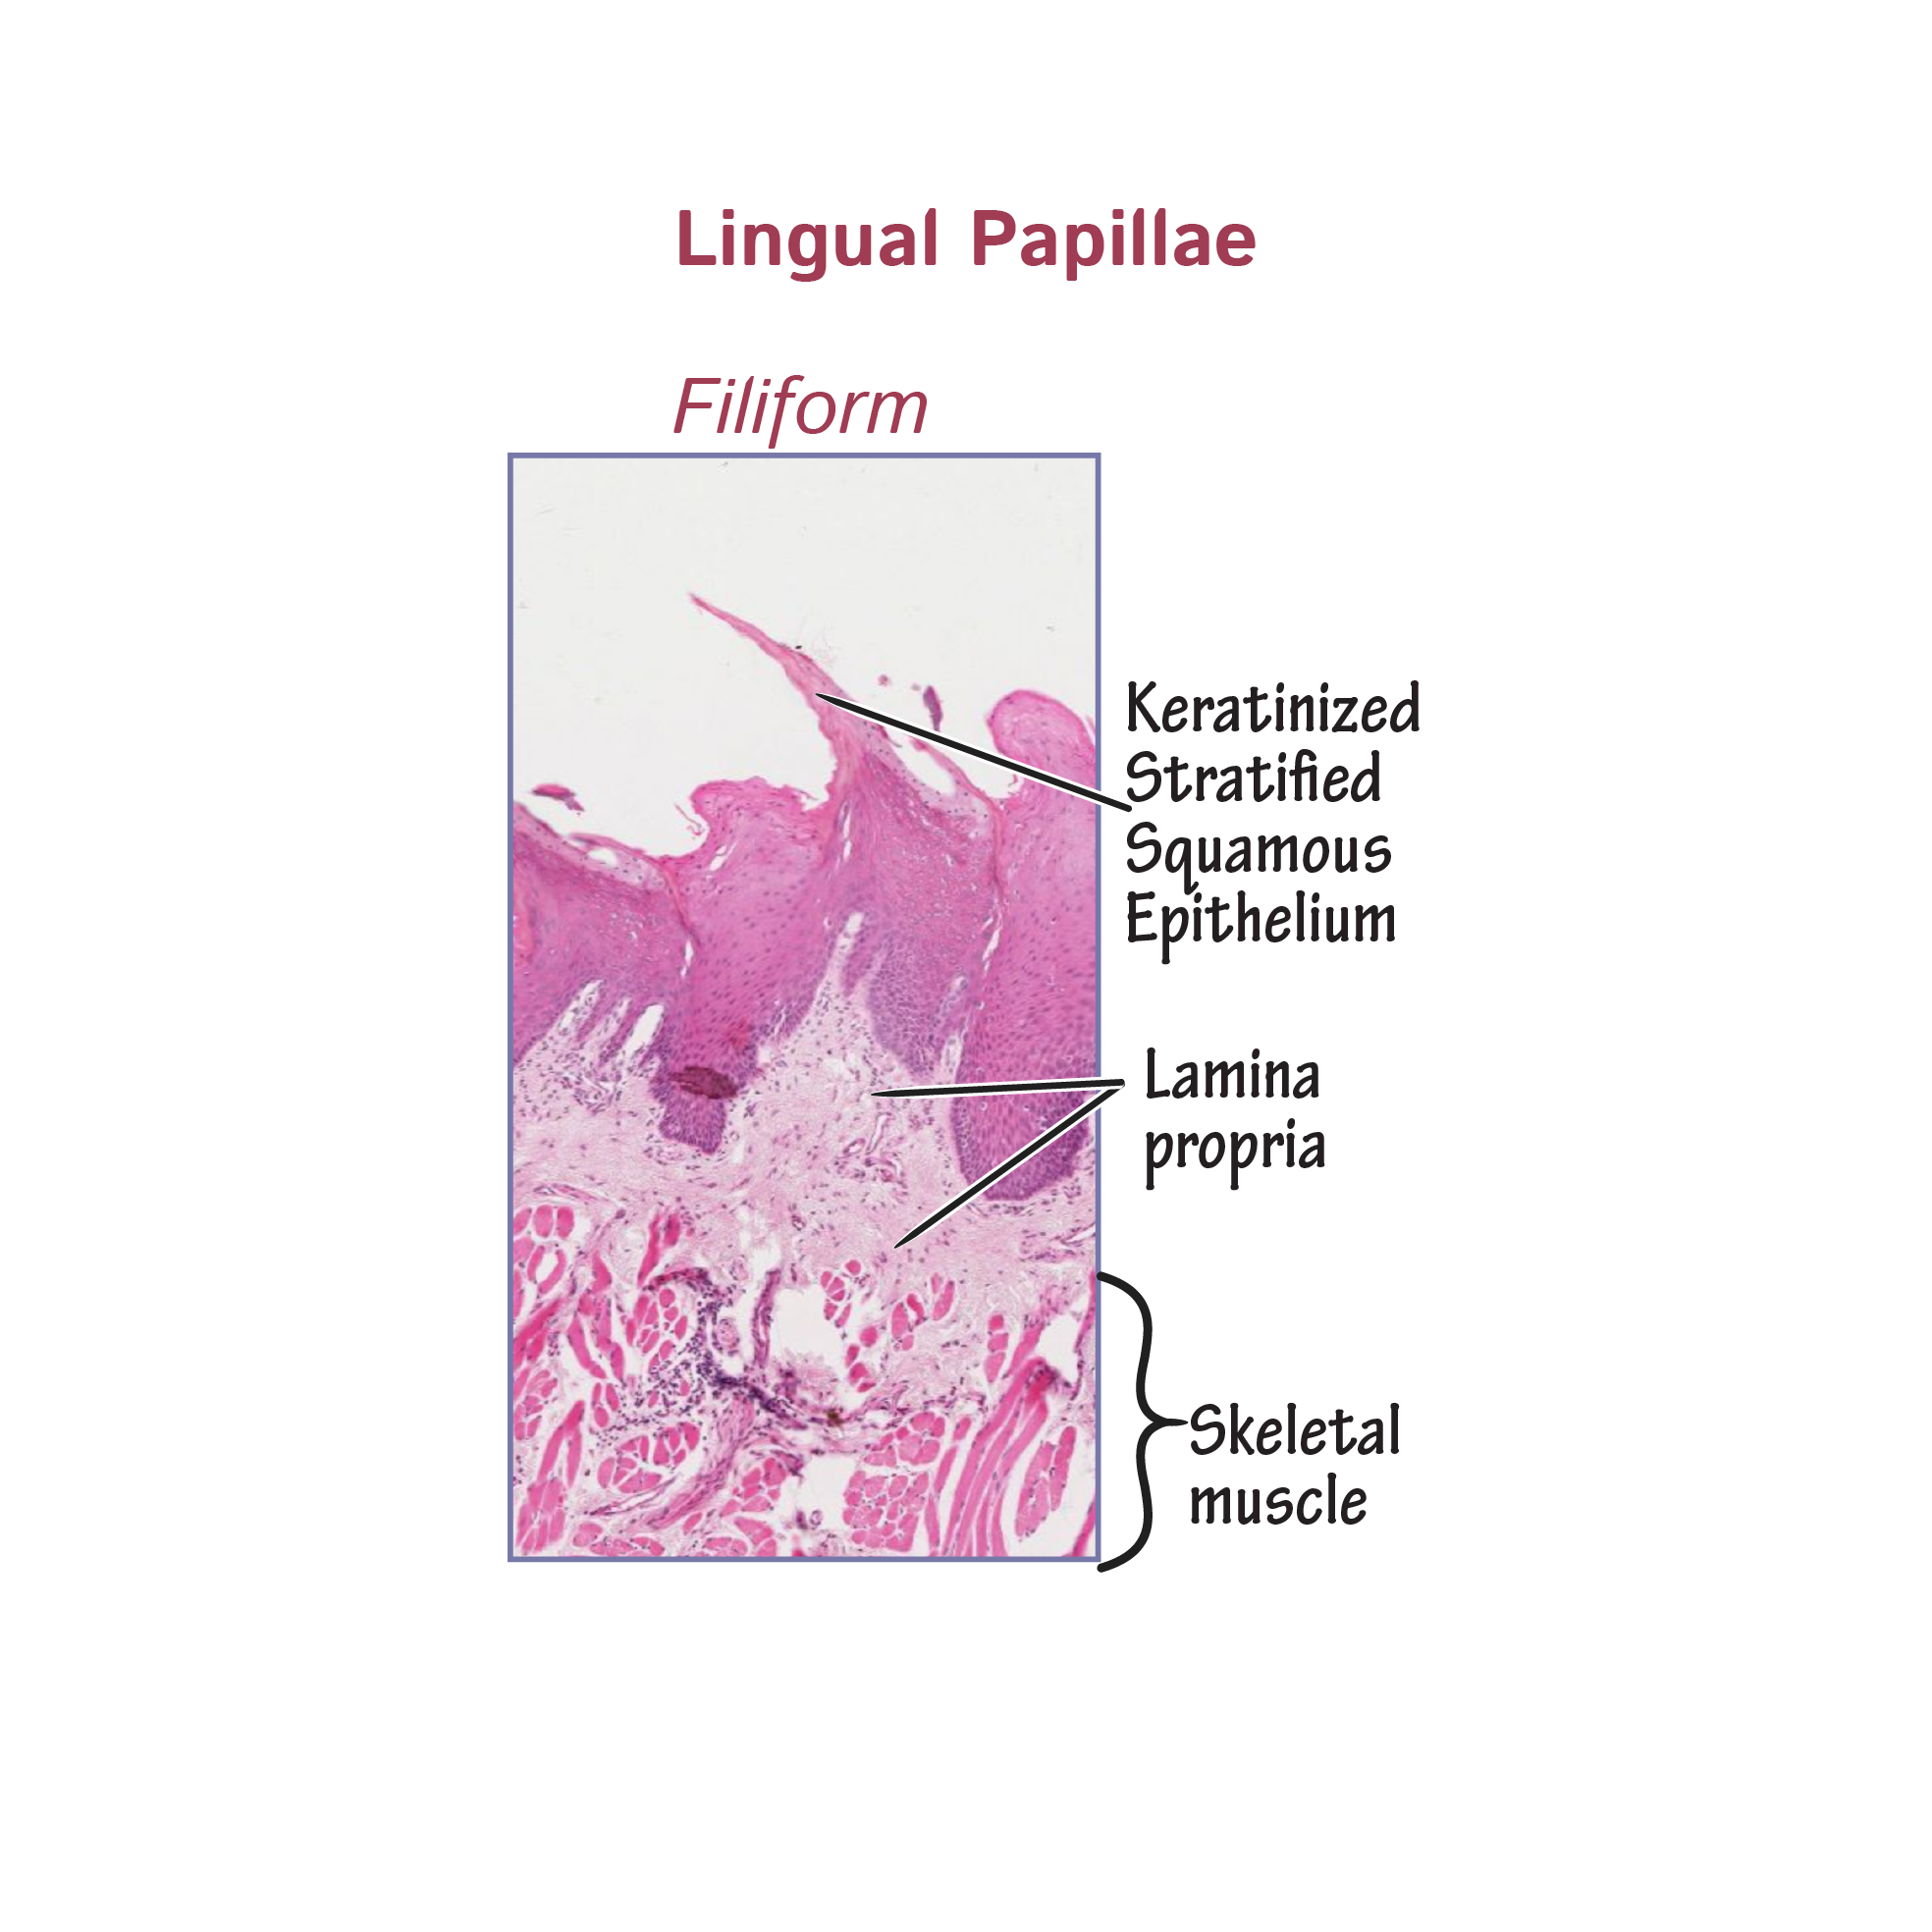 Histology Glossary Lingual Papillae Draw It To Know It